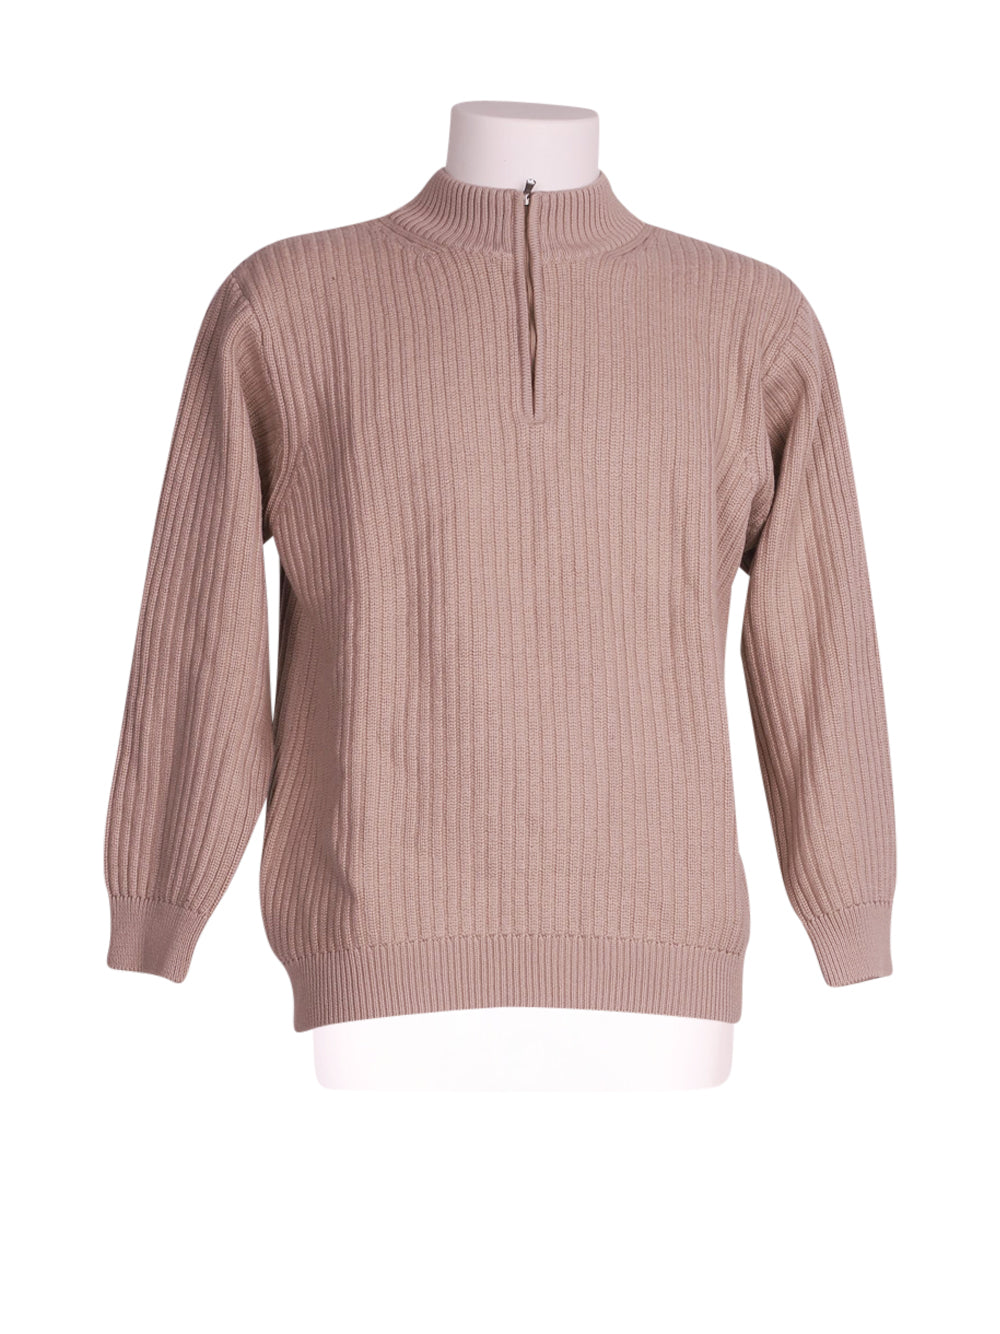 Front photo of Preloved il granchio Beige Man's sweater - size 40/L